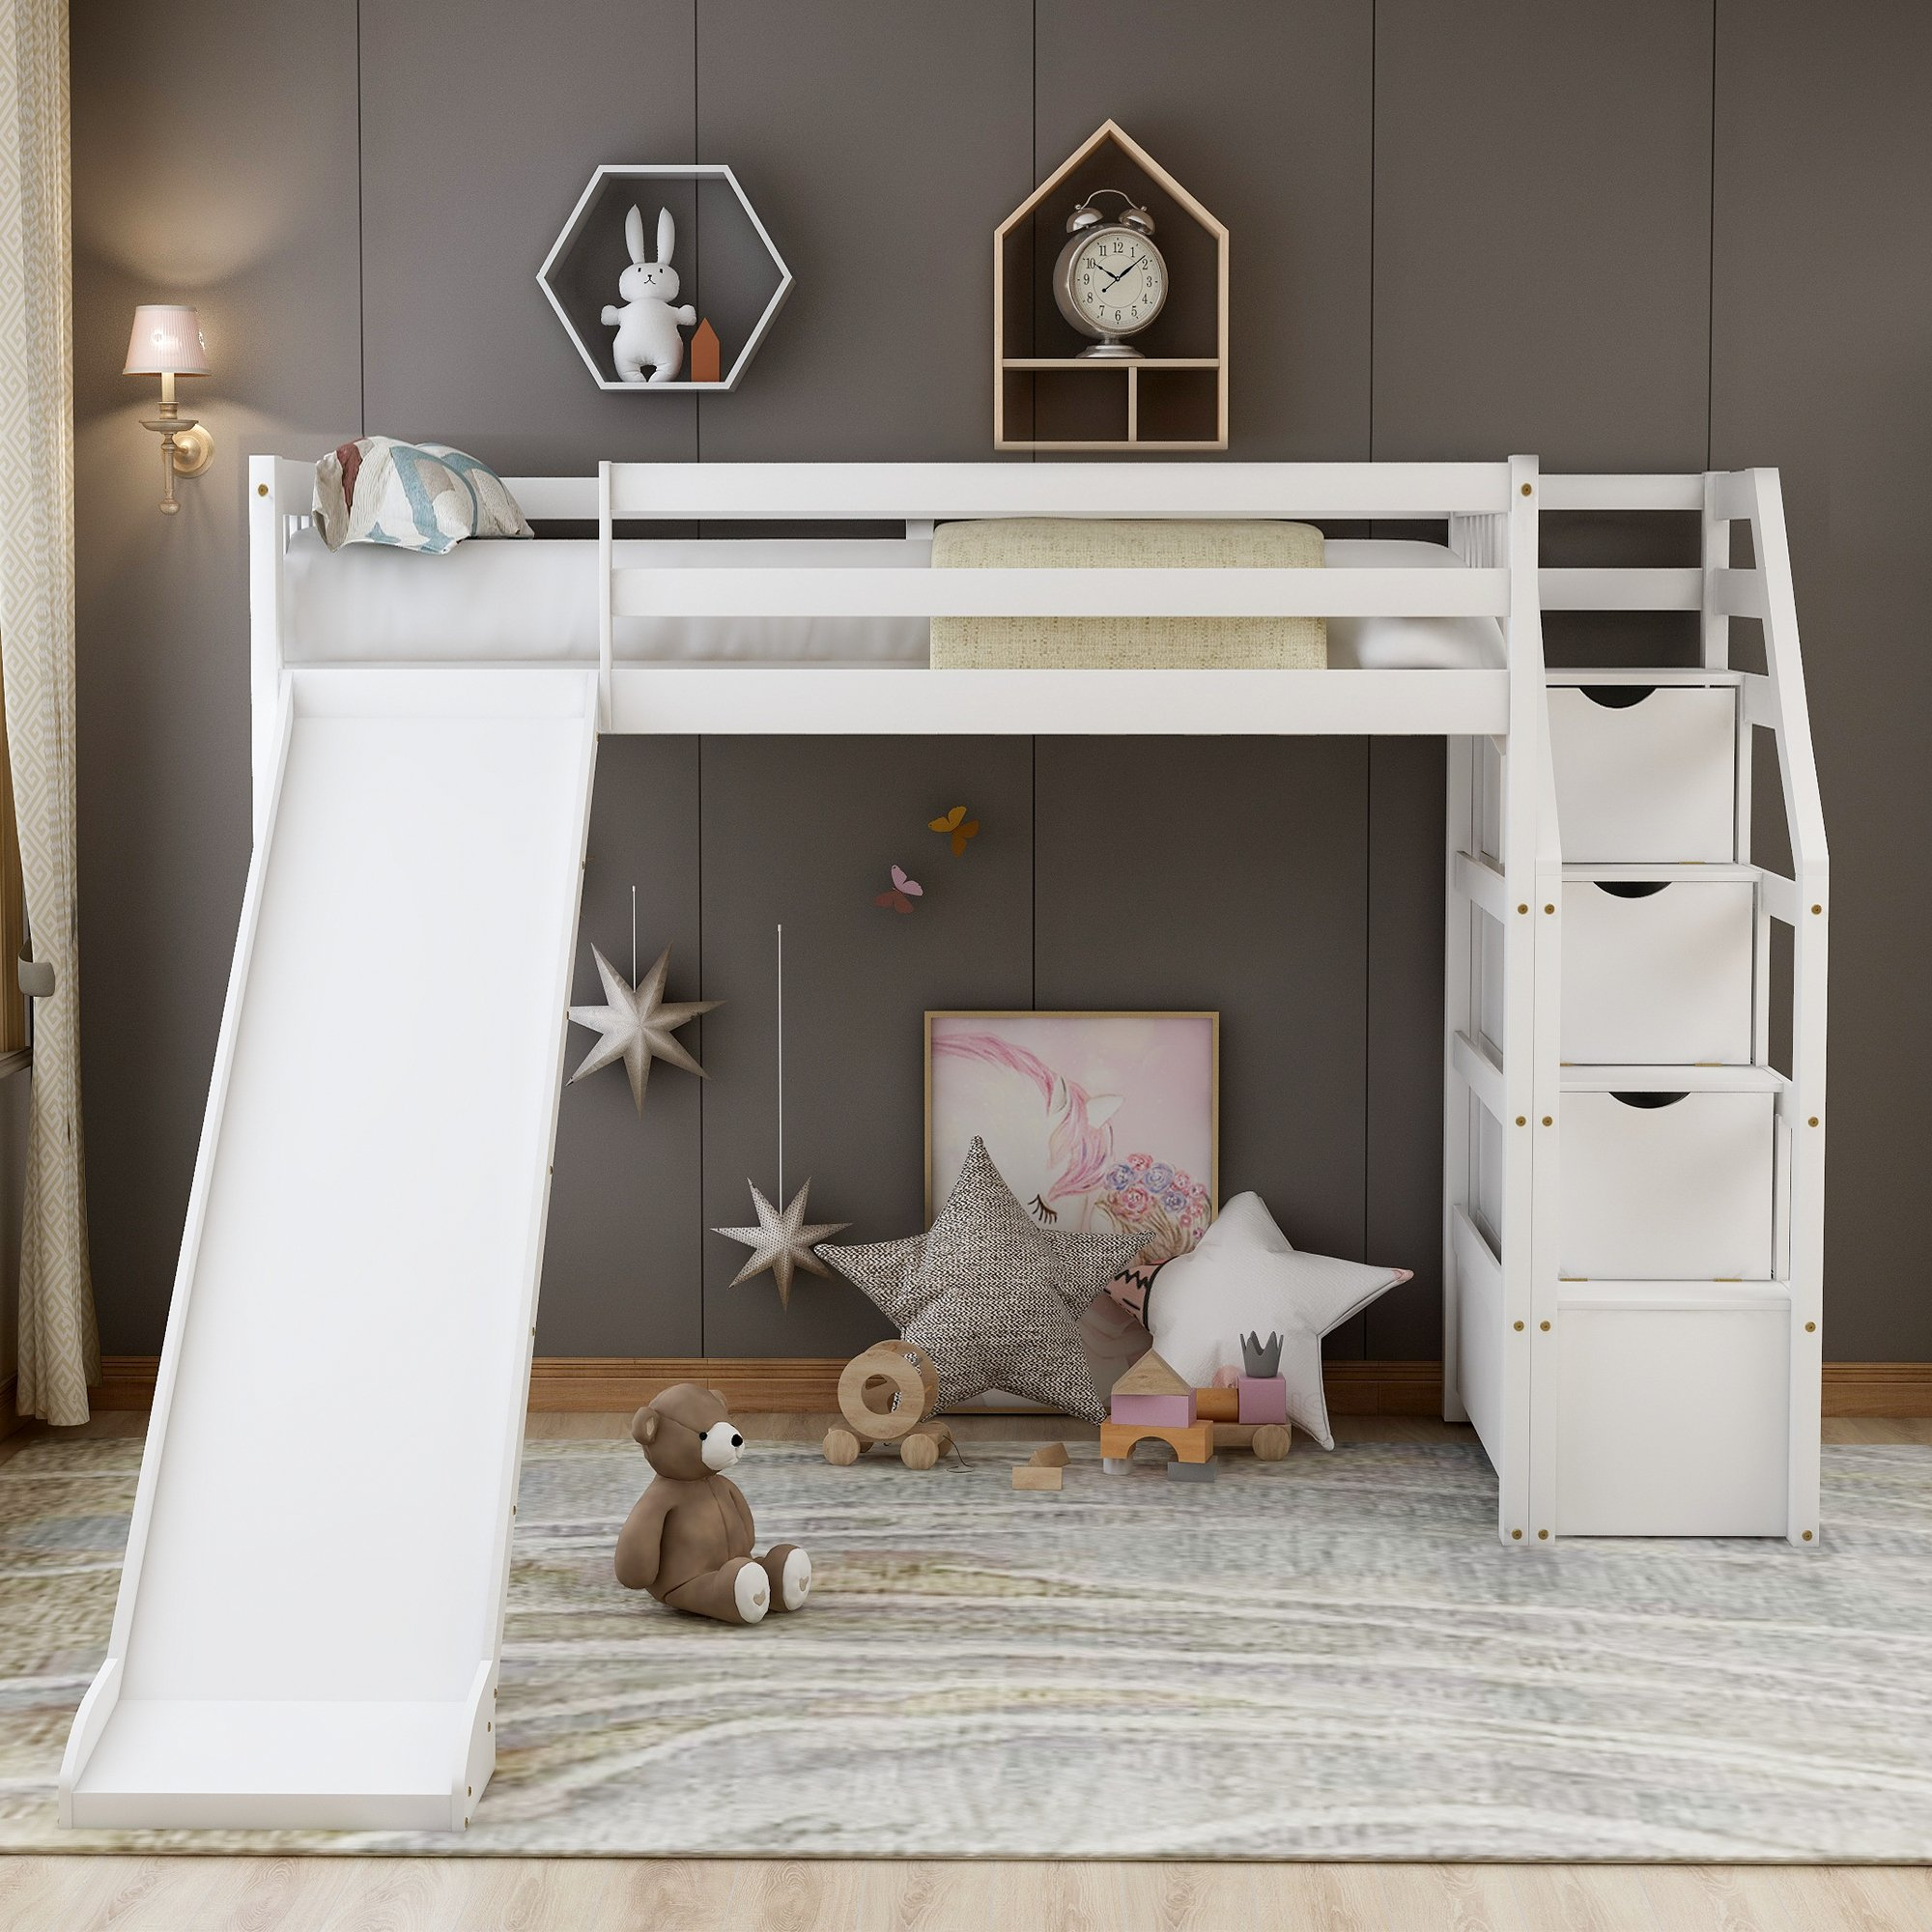 Twin Size Loft Bed With Storage And Slide, White New